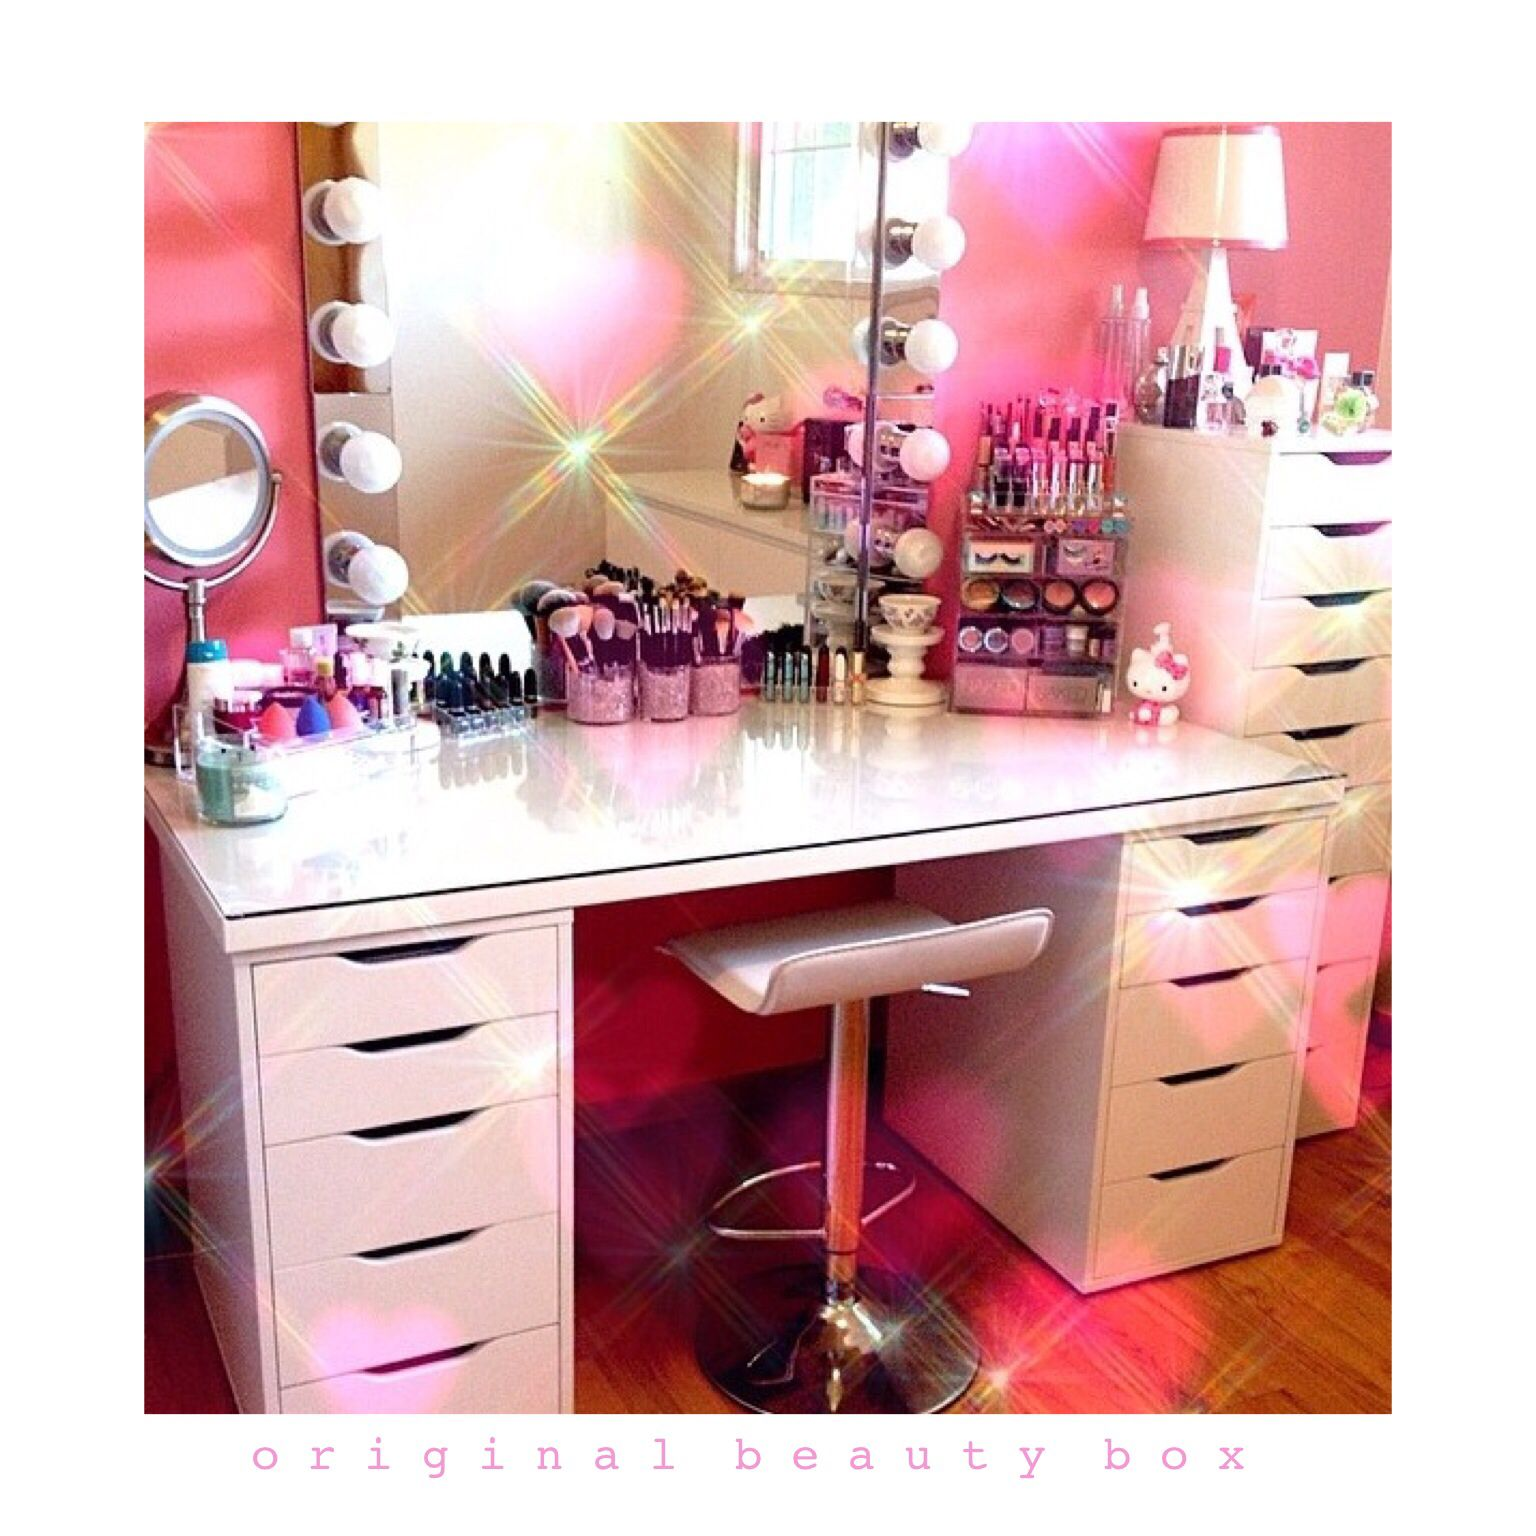 Mueble Tocador Maquillaje Vanity Setup Using The Original Beauty Box Www